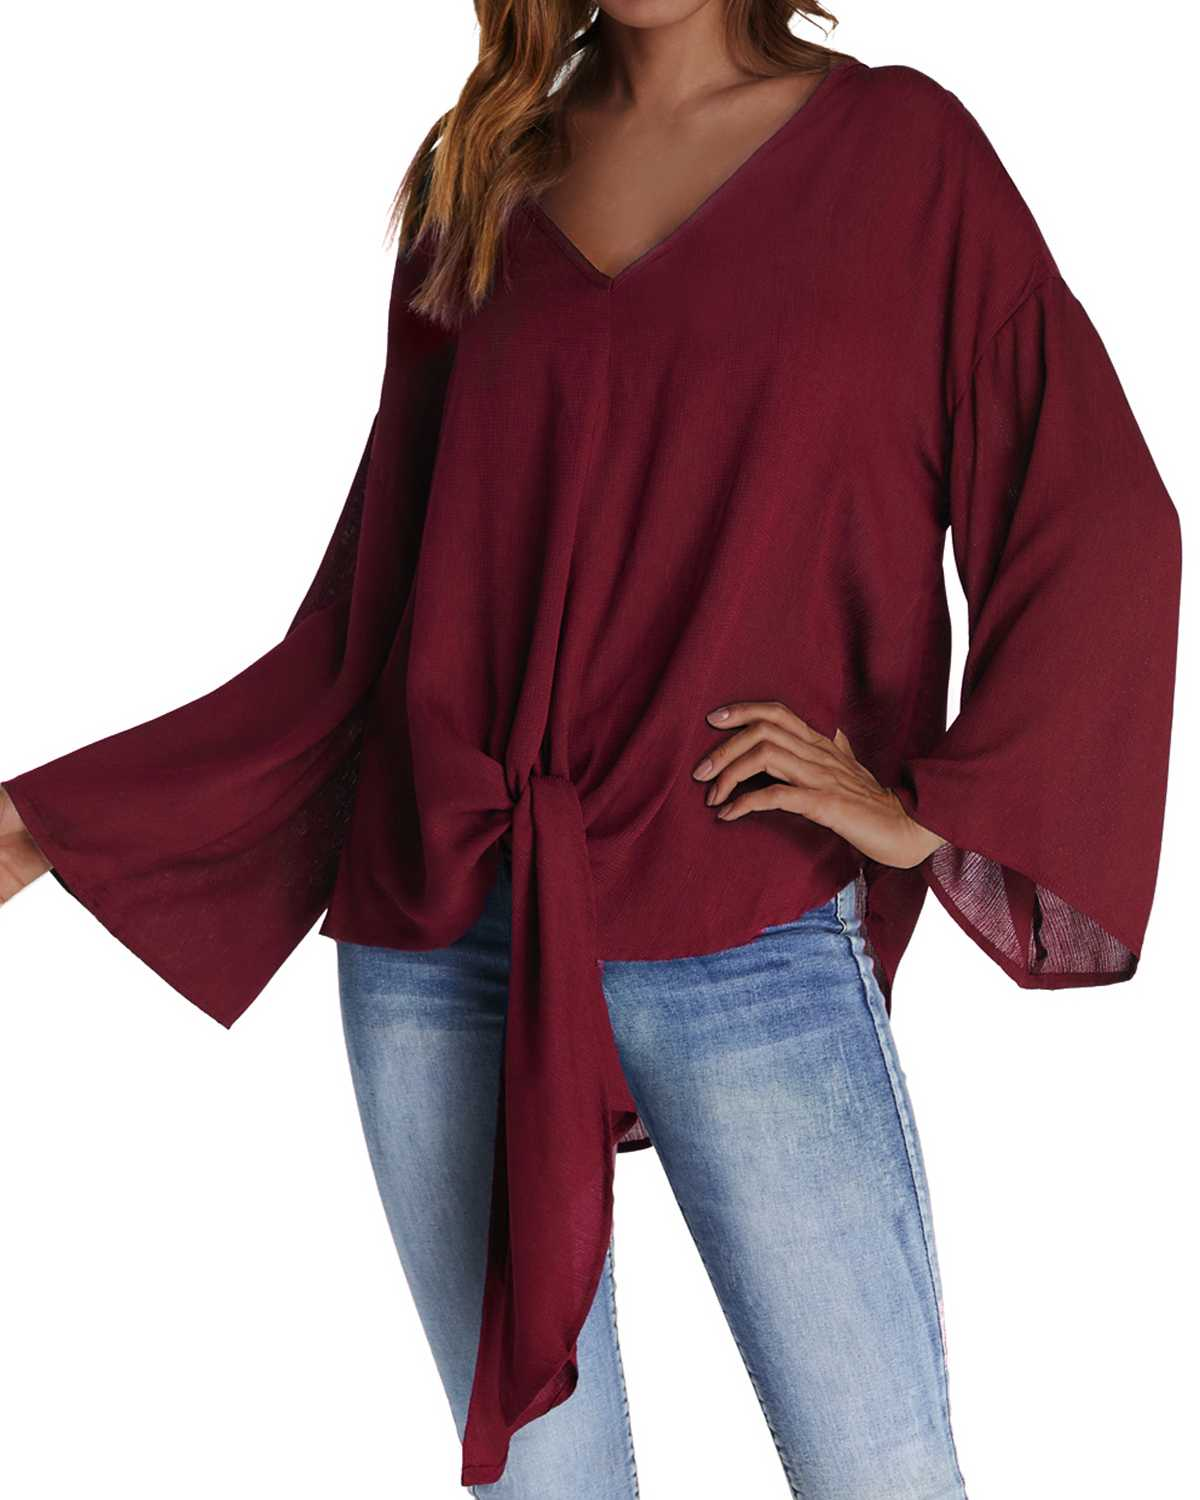 ZANZEA 2019 Spring Women Chiffon   Blouse     Shirt   Casual Solid Color Long Pullover Tops Loose Sexy V-Neck Bat Sleeve   Shirts   Big Size